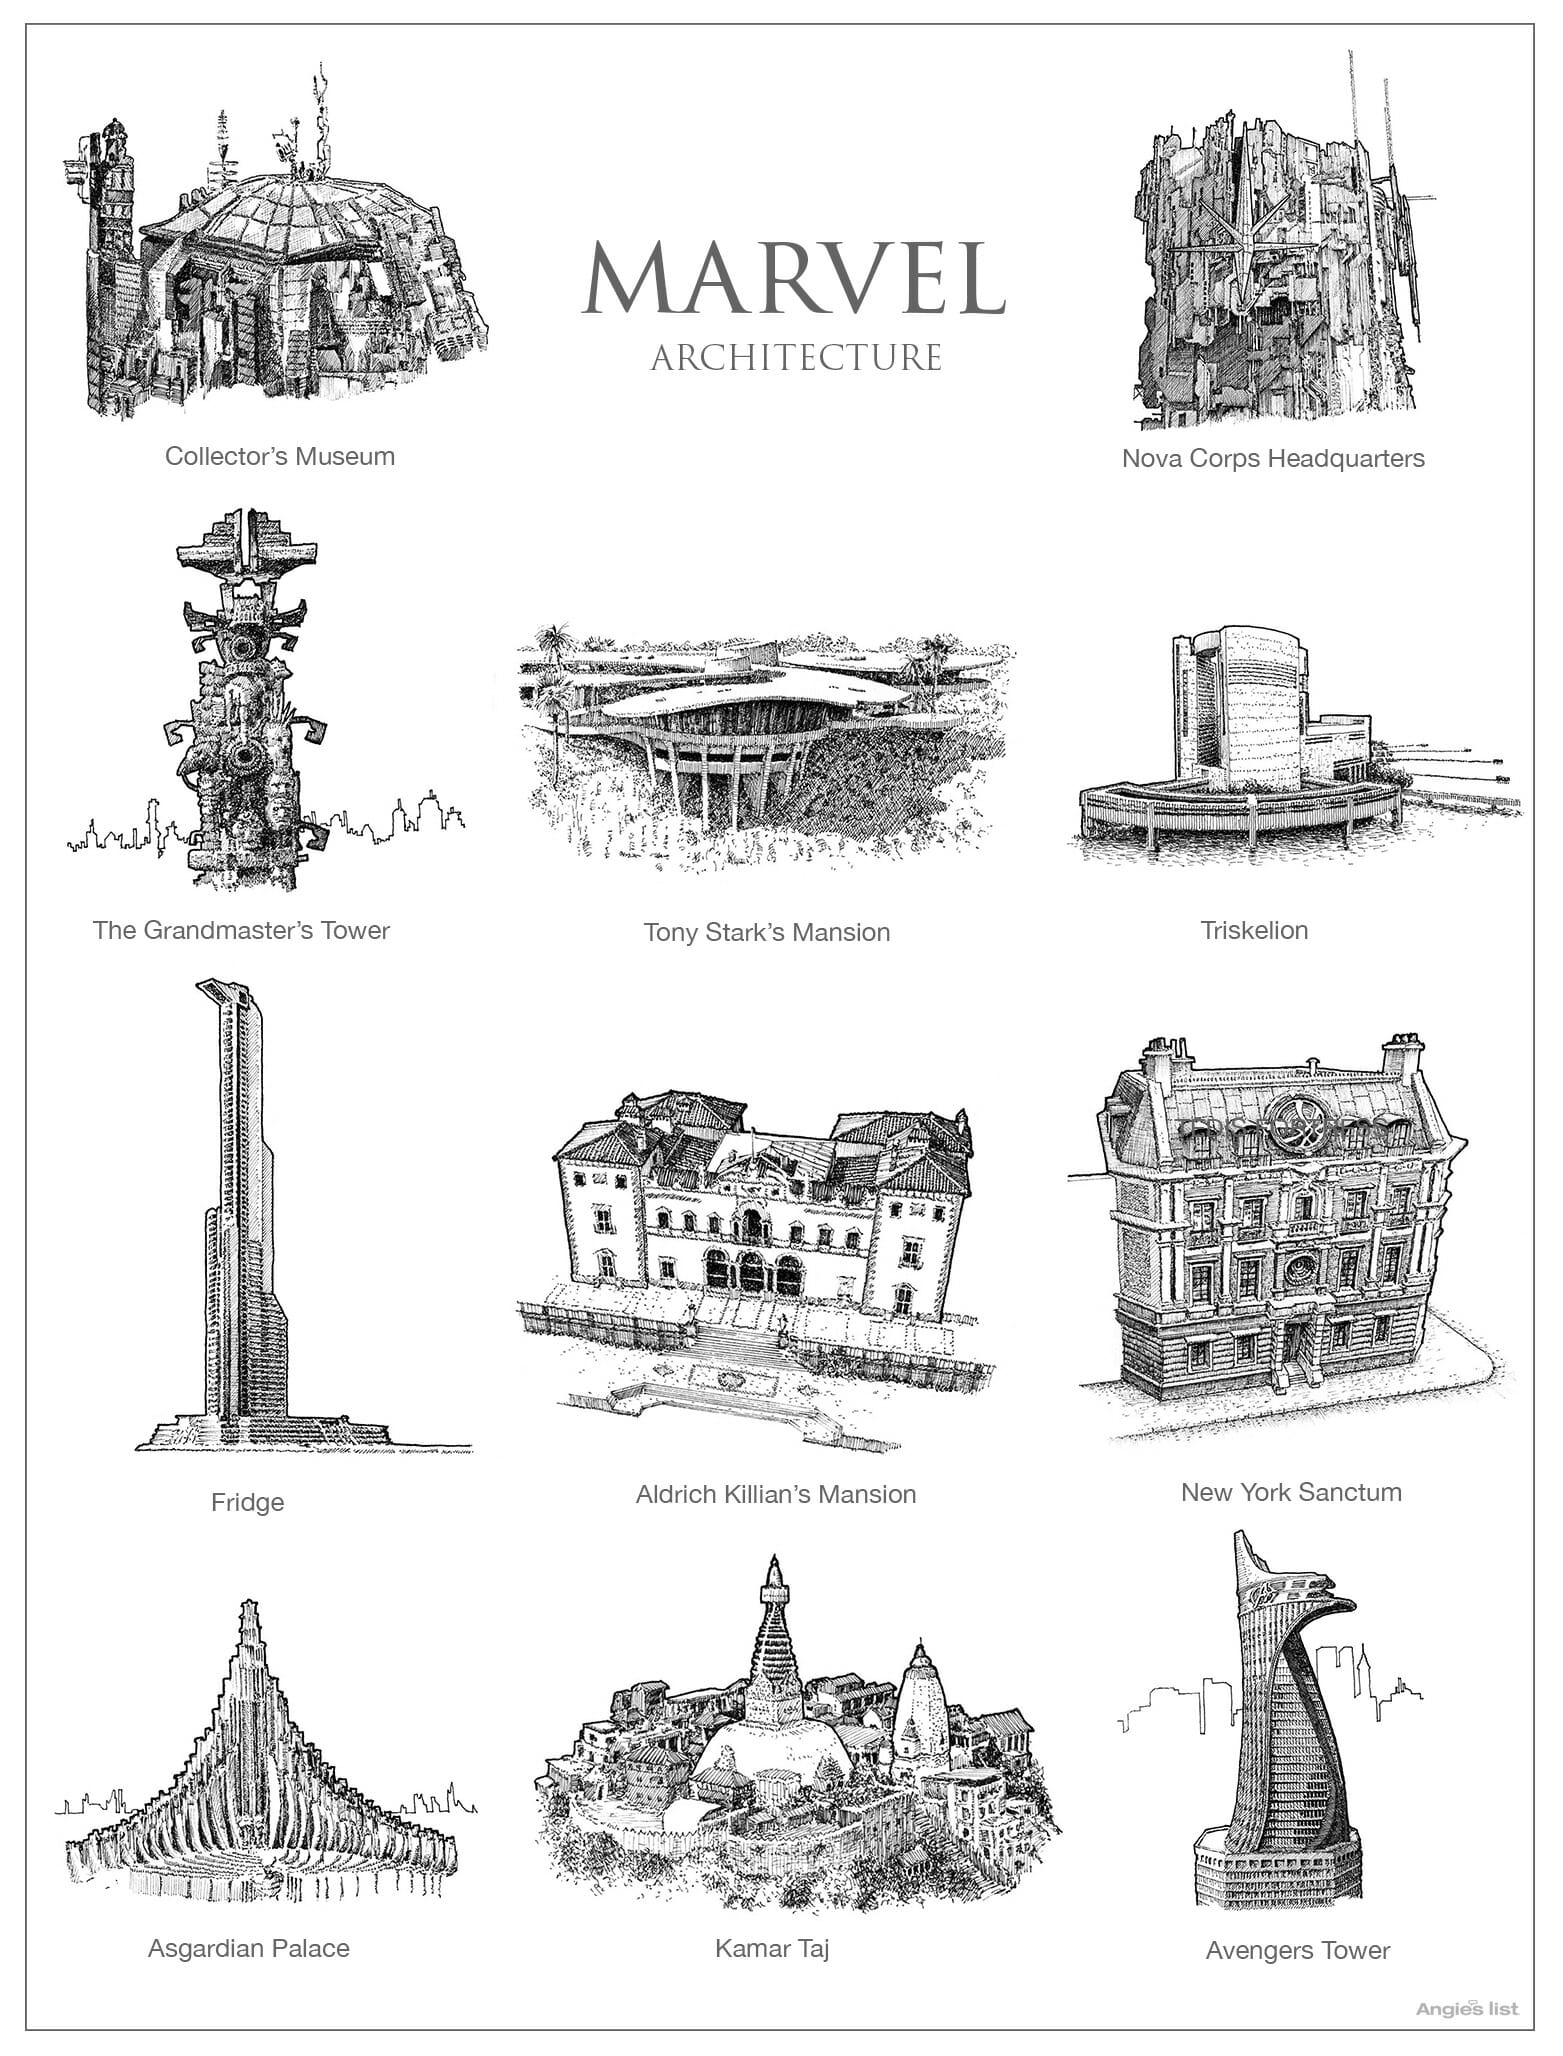 Hand-drawn architecture for the MCU